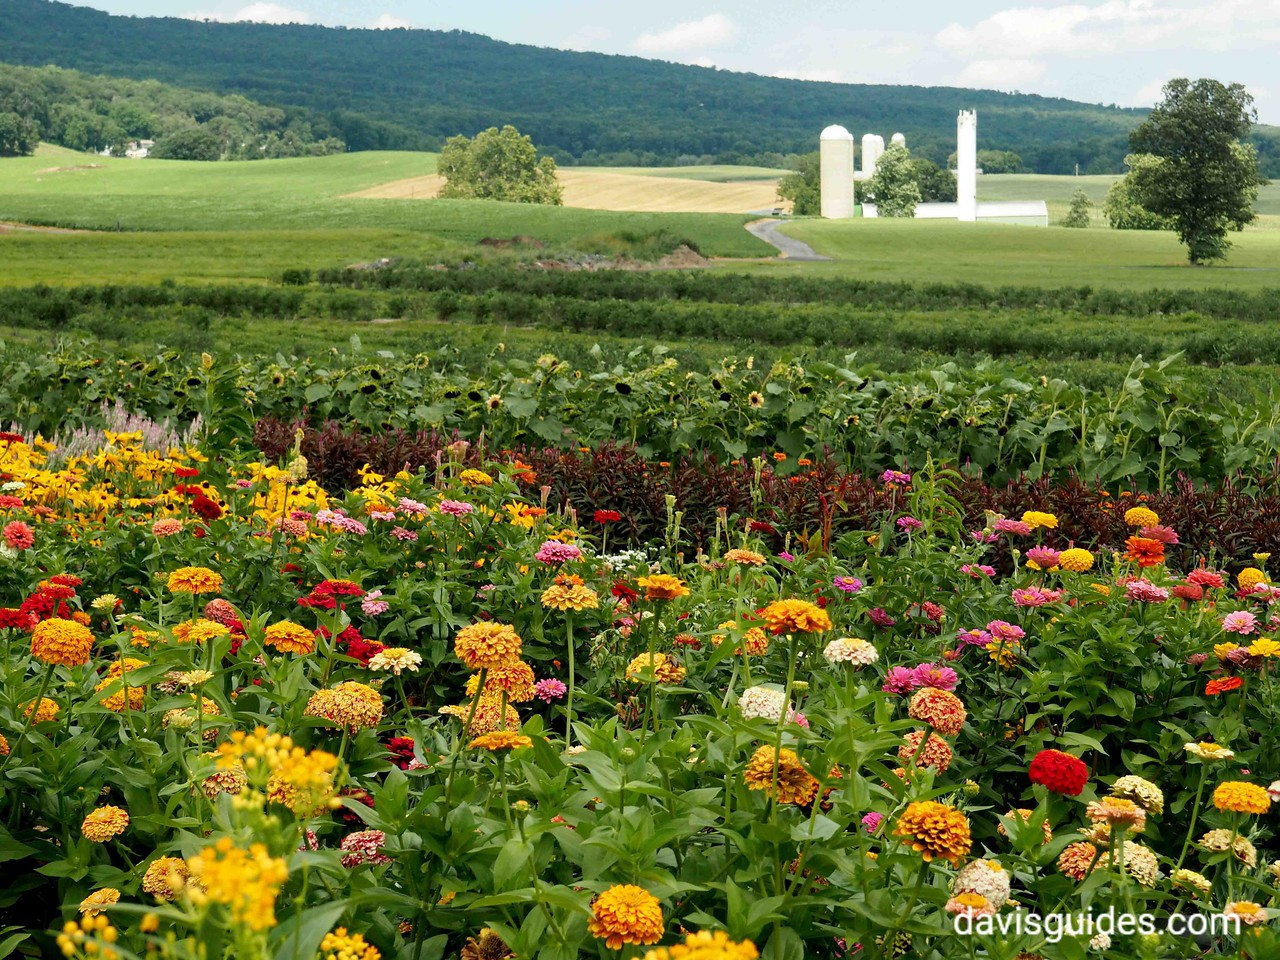 Flowers and farm fields near Catoctin MD